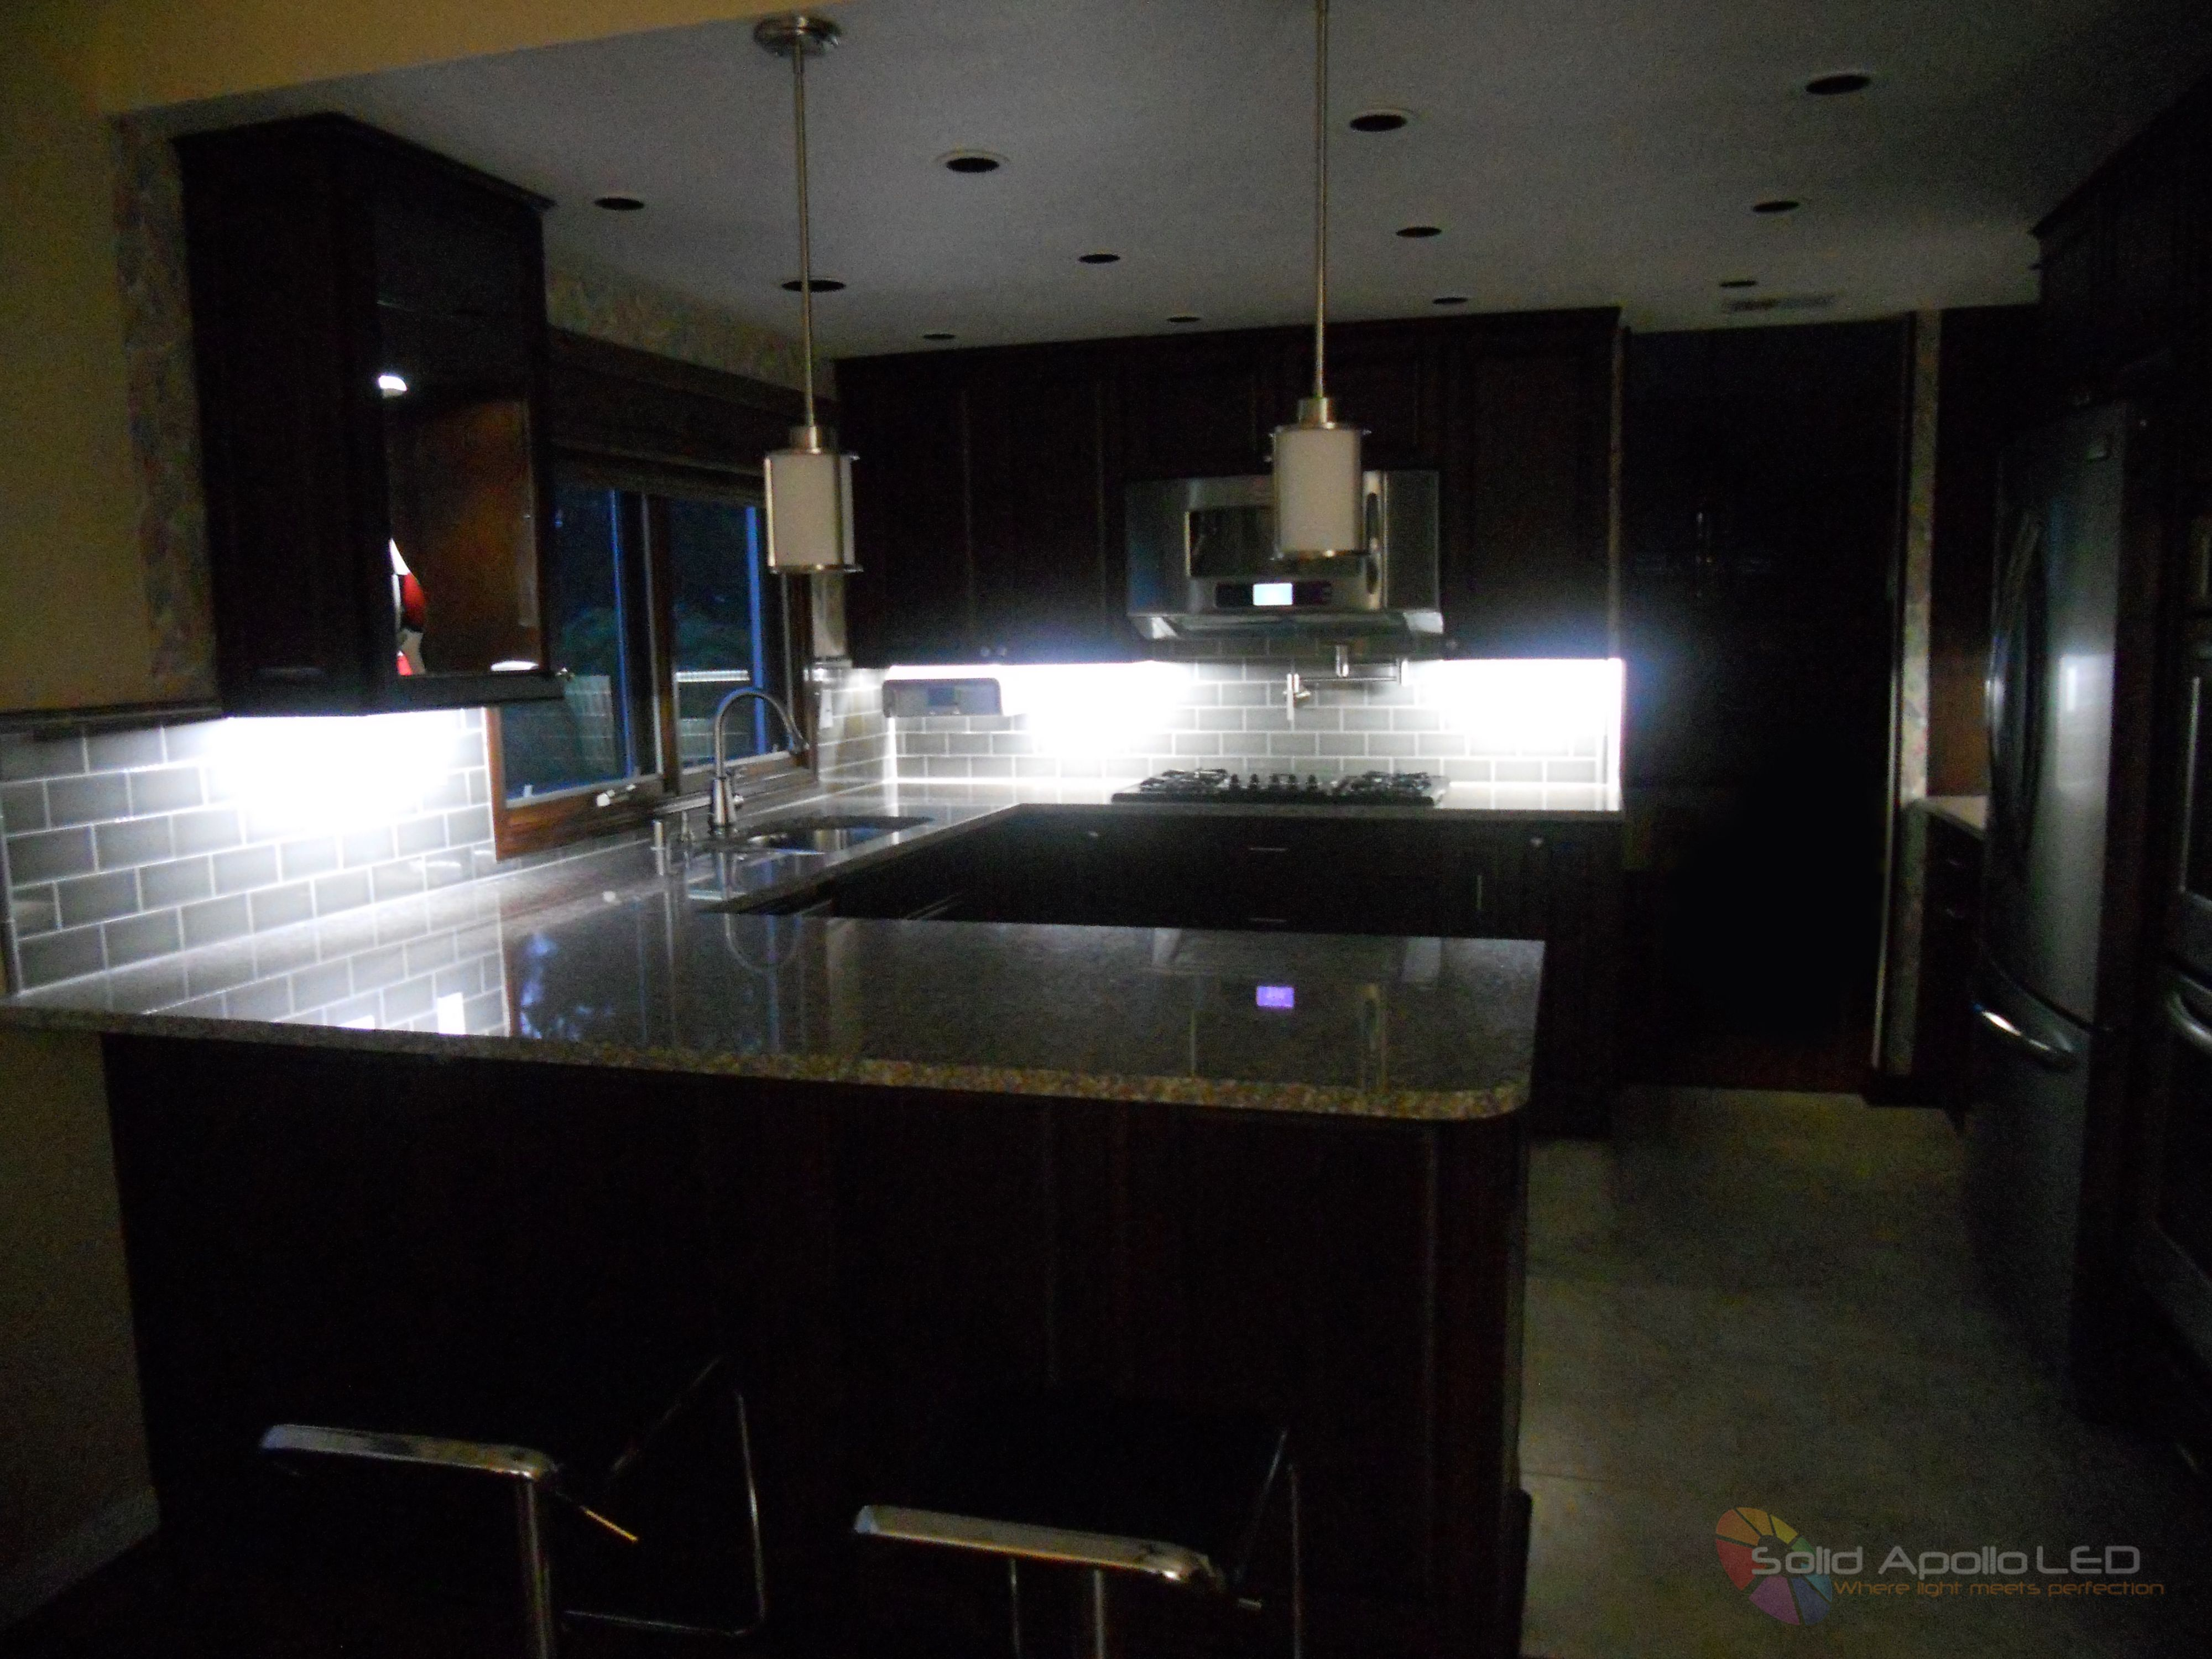 Kitchen Under Cabinet Lighting Project Solid Apollo LED